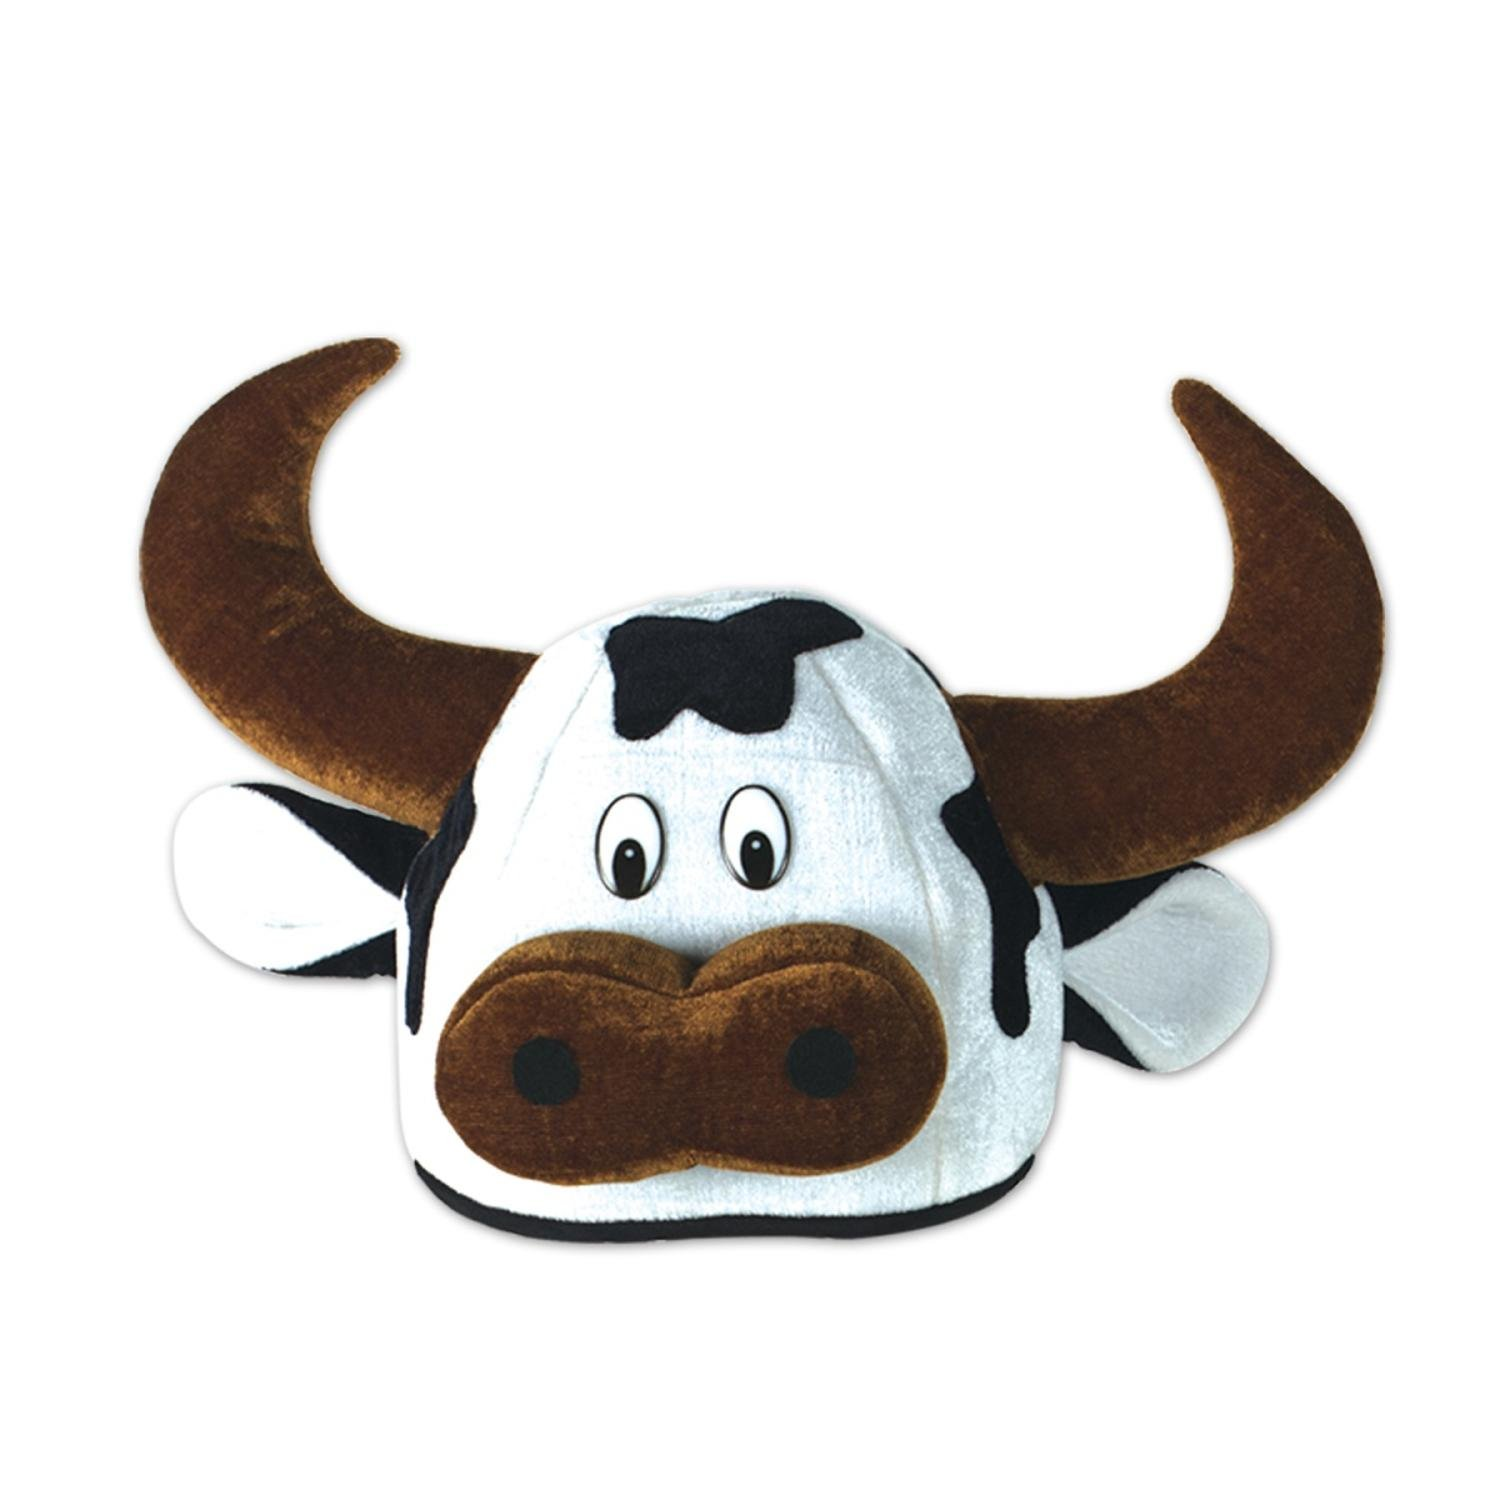 Club Pack of 12 Cute Counrty Western Plush White, Black and Brown Cow Head Costume Party Hats by Party Central